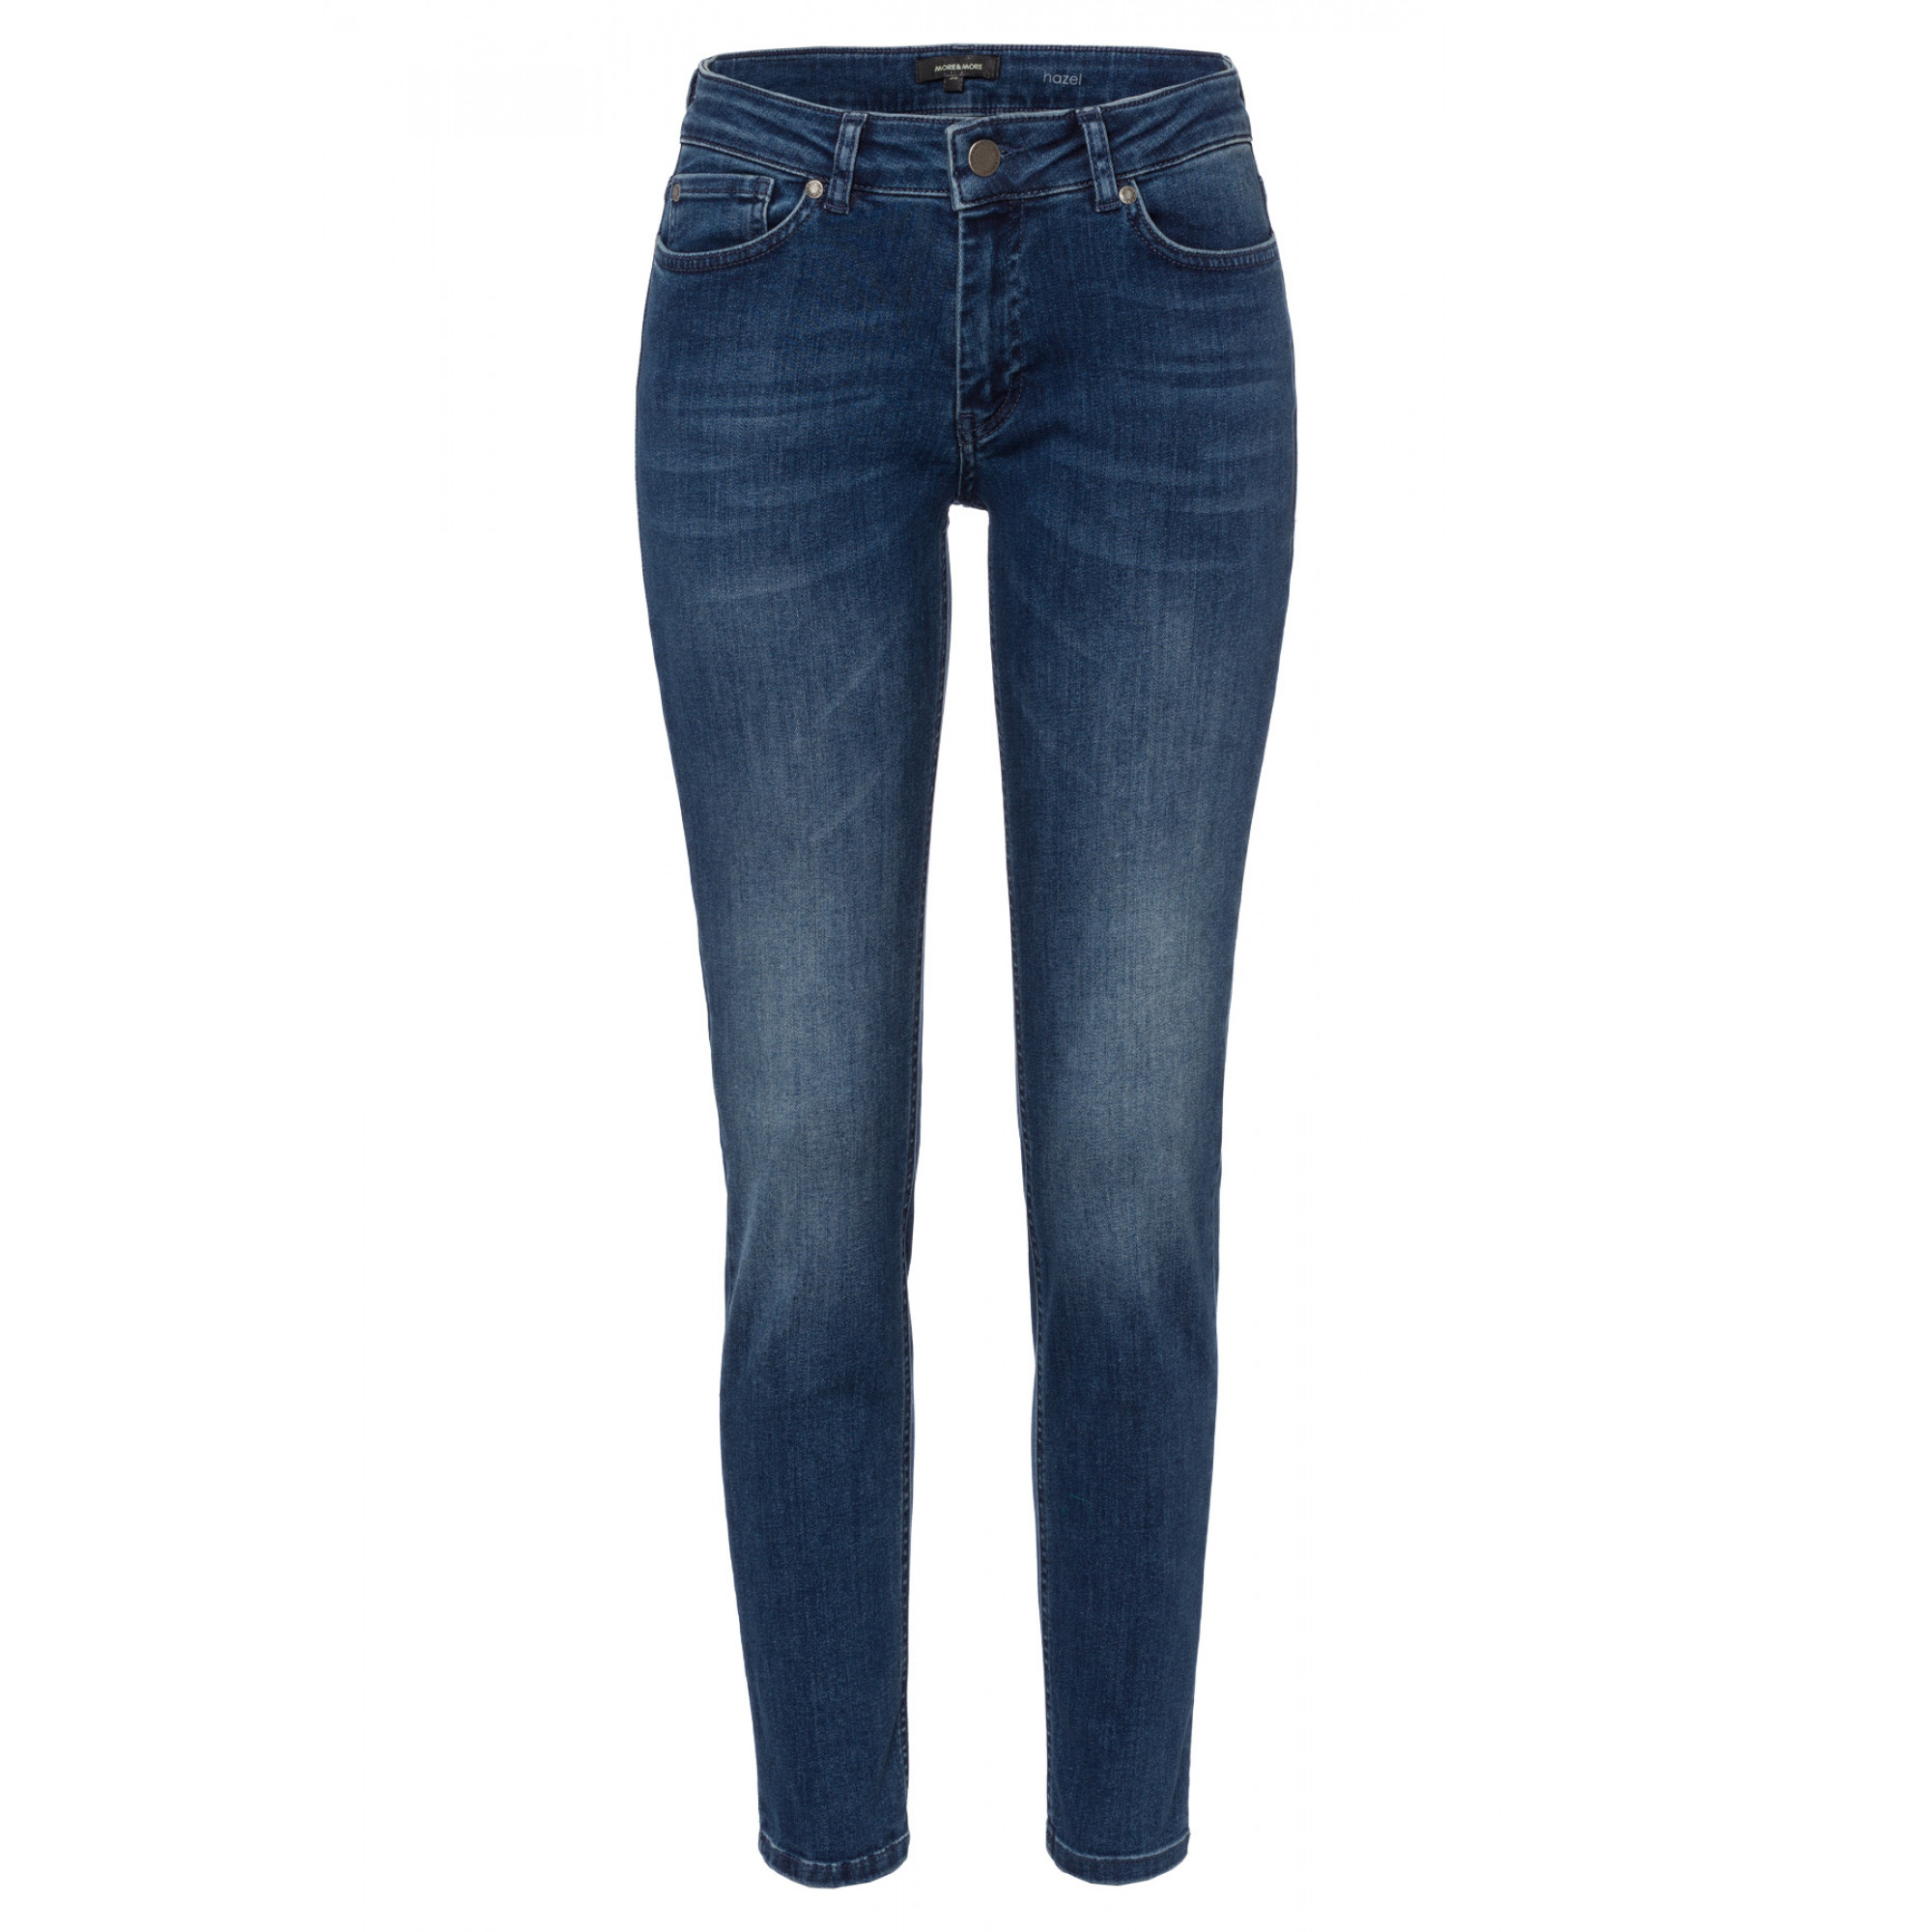 Jeans, Five Pocket, Hazel 91094201-0962 1